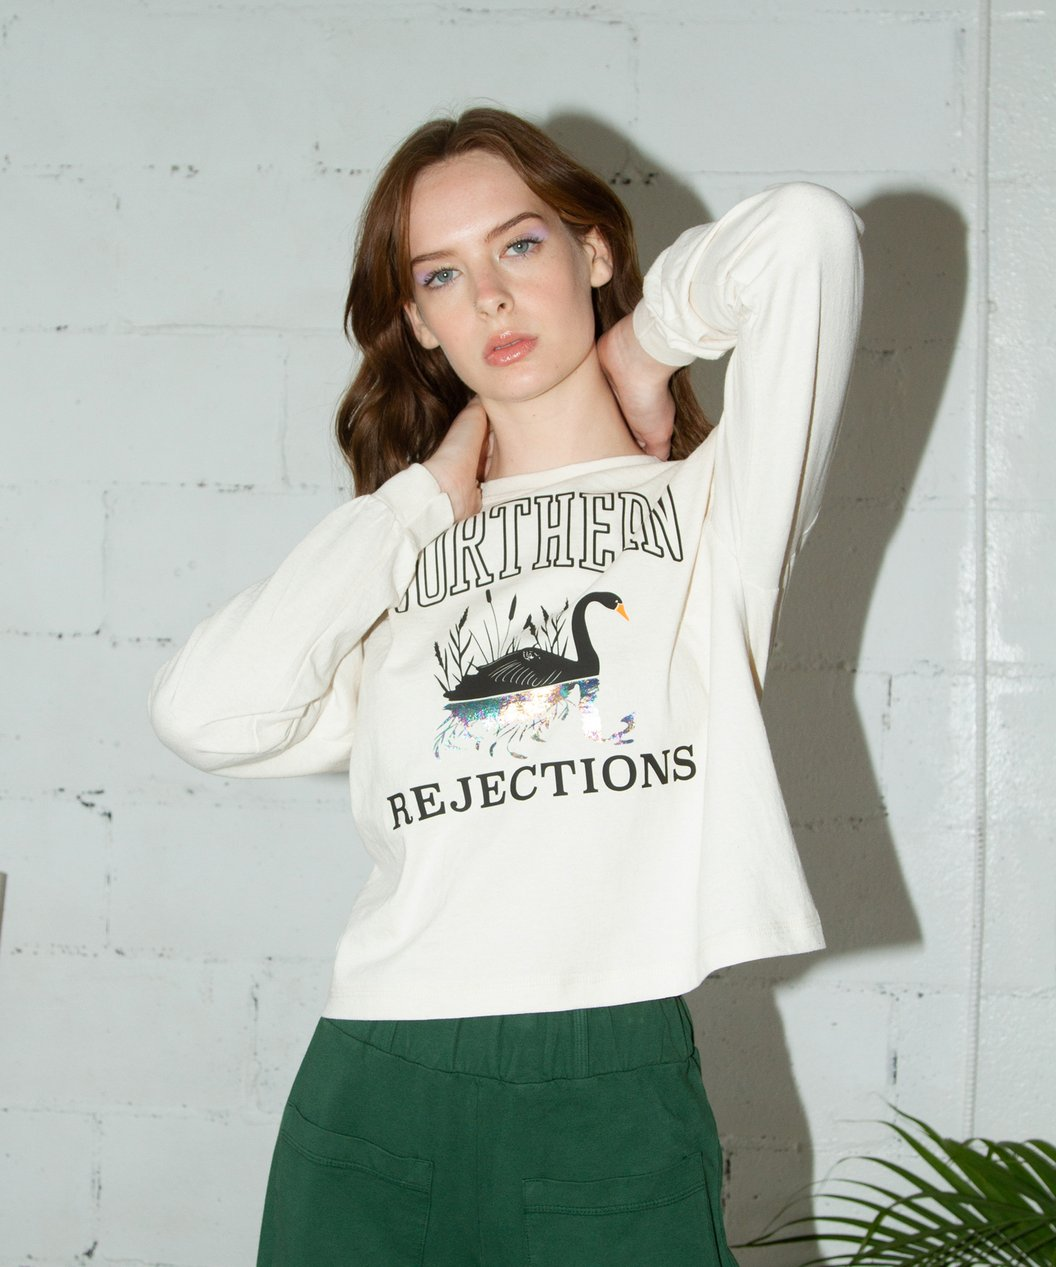 northern_rejections truss tee okayok clothing toronto carolyn tripp graphic design